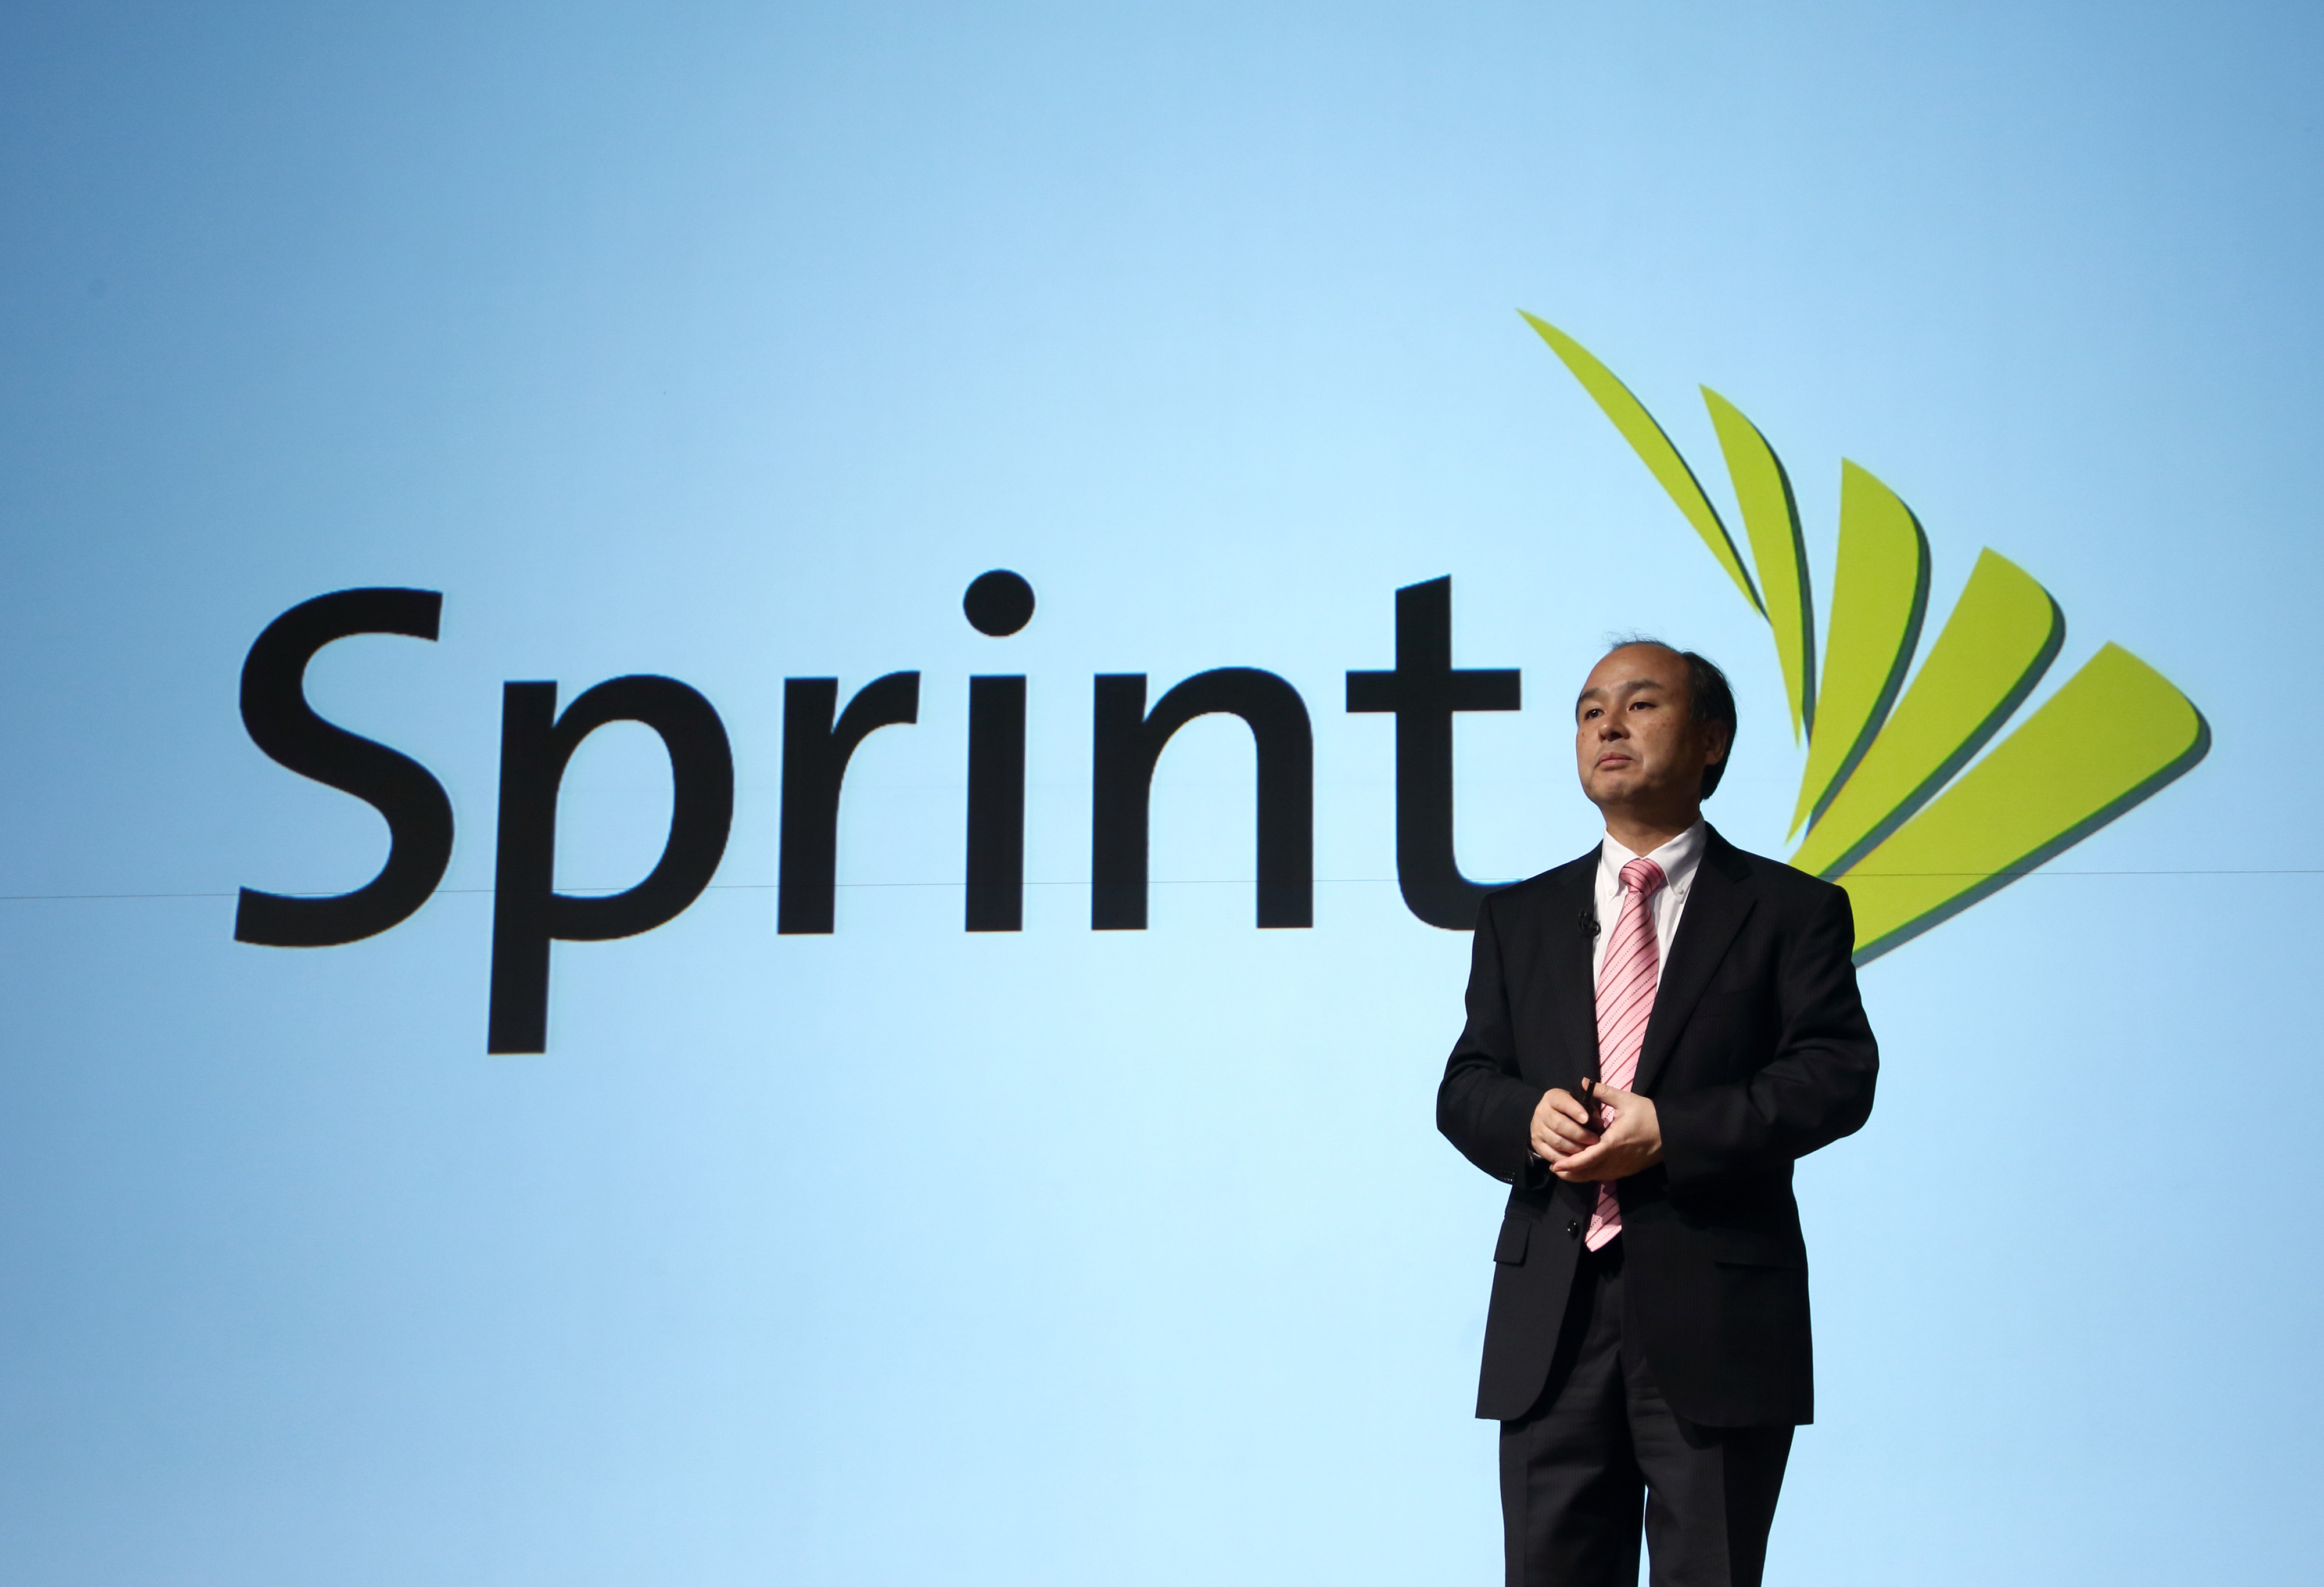 Billionaire Masayoshi Son, chairman and chief executive officer of SoftBank Corp., speaks in front of a screen displaying the logo of Sprint Corp. during a news conference in Tokyo, Japan, on Wednesday, Feb. 12, 2014.